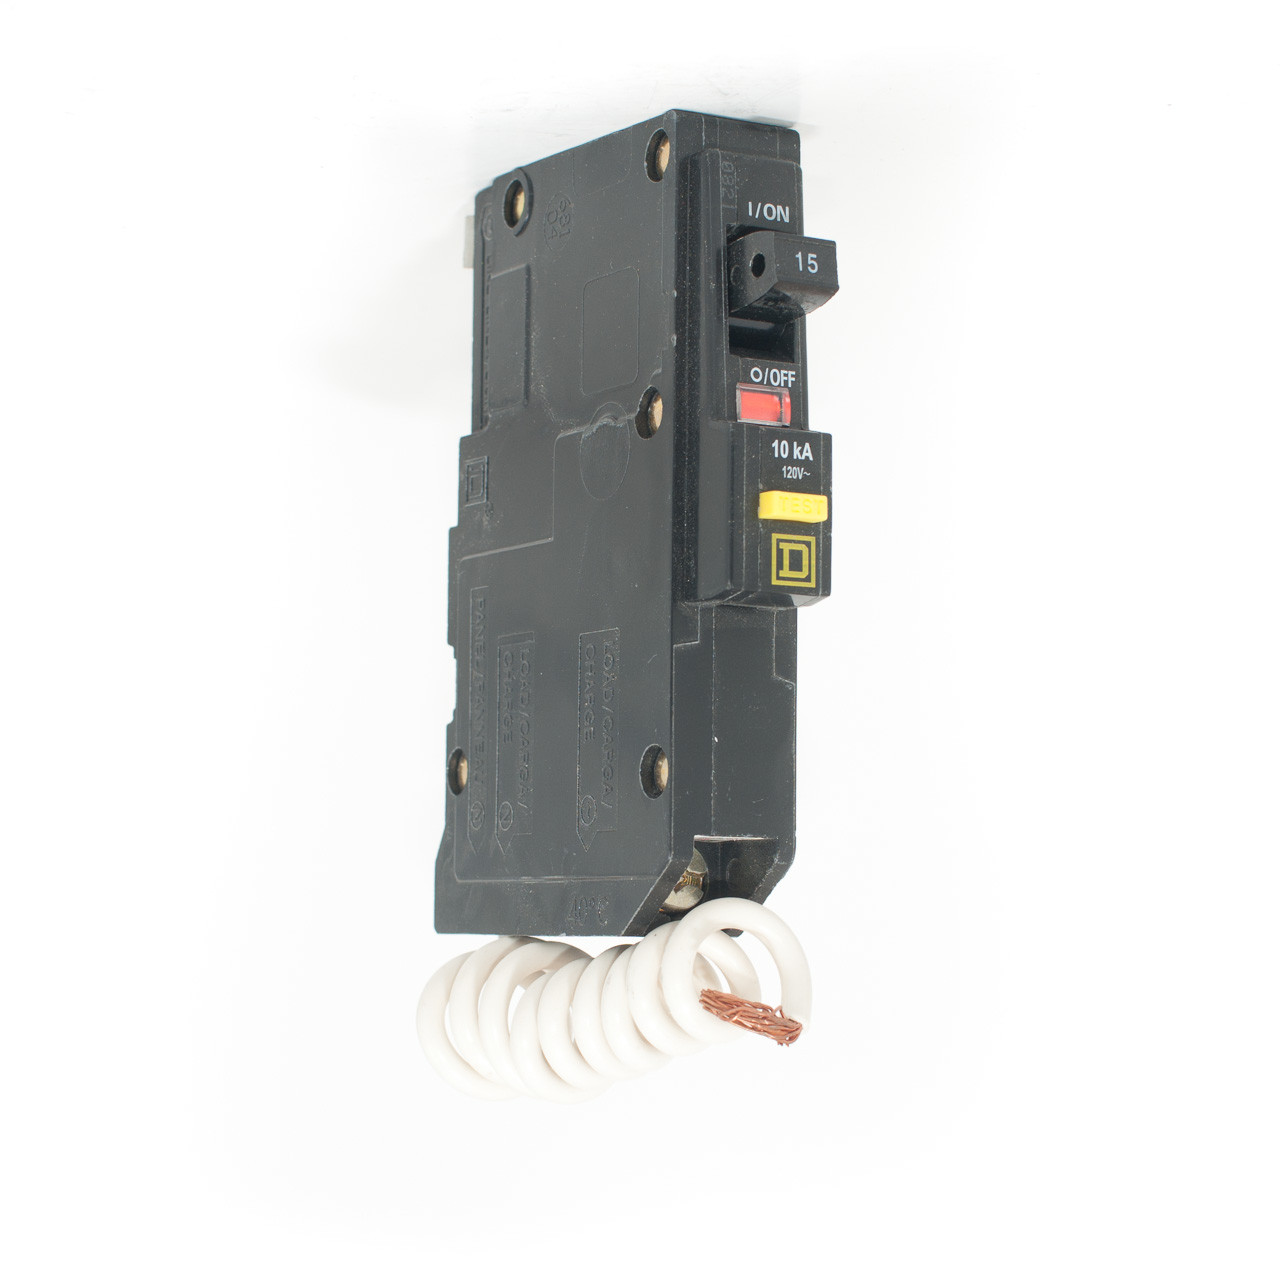 Padlock Device Square D Qo Circuit Breakers Wiring Diagram Image For Breaker Finder With Gfci From Graybarstore 15a Single Pole Push On Tremtech Electrical Rh Store Com Homeline Hom